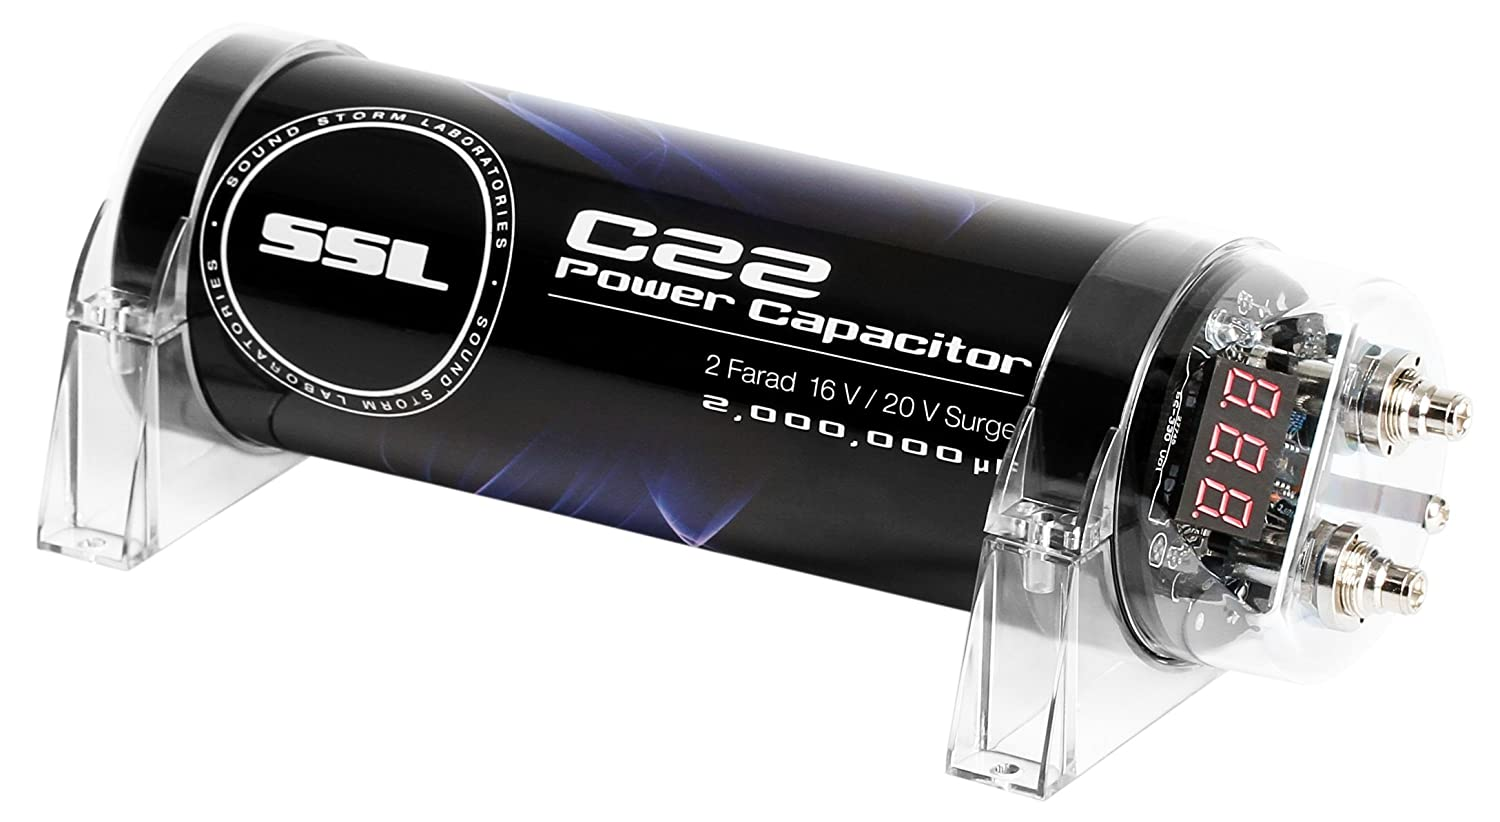 Sound Storm C22 2 Farad Car Capacitor for Energy Storage to Enhance Bass Demand from Audio System